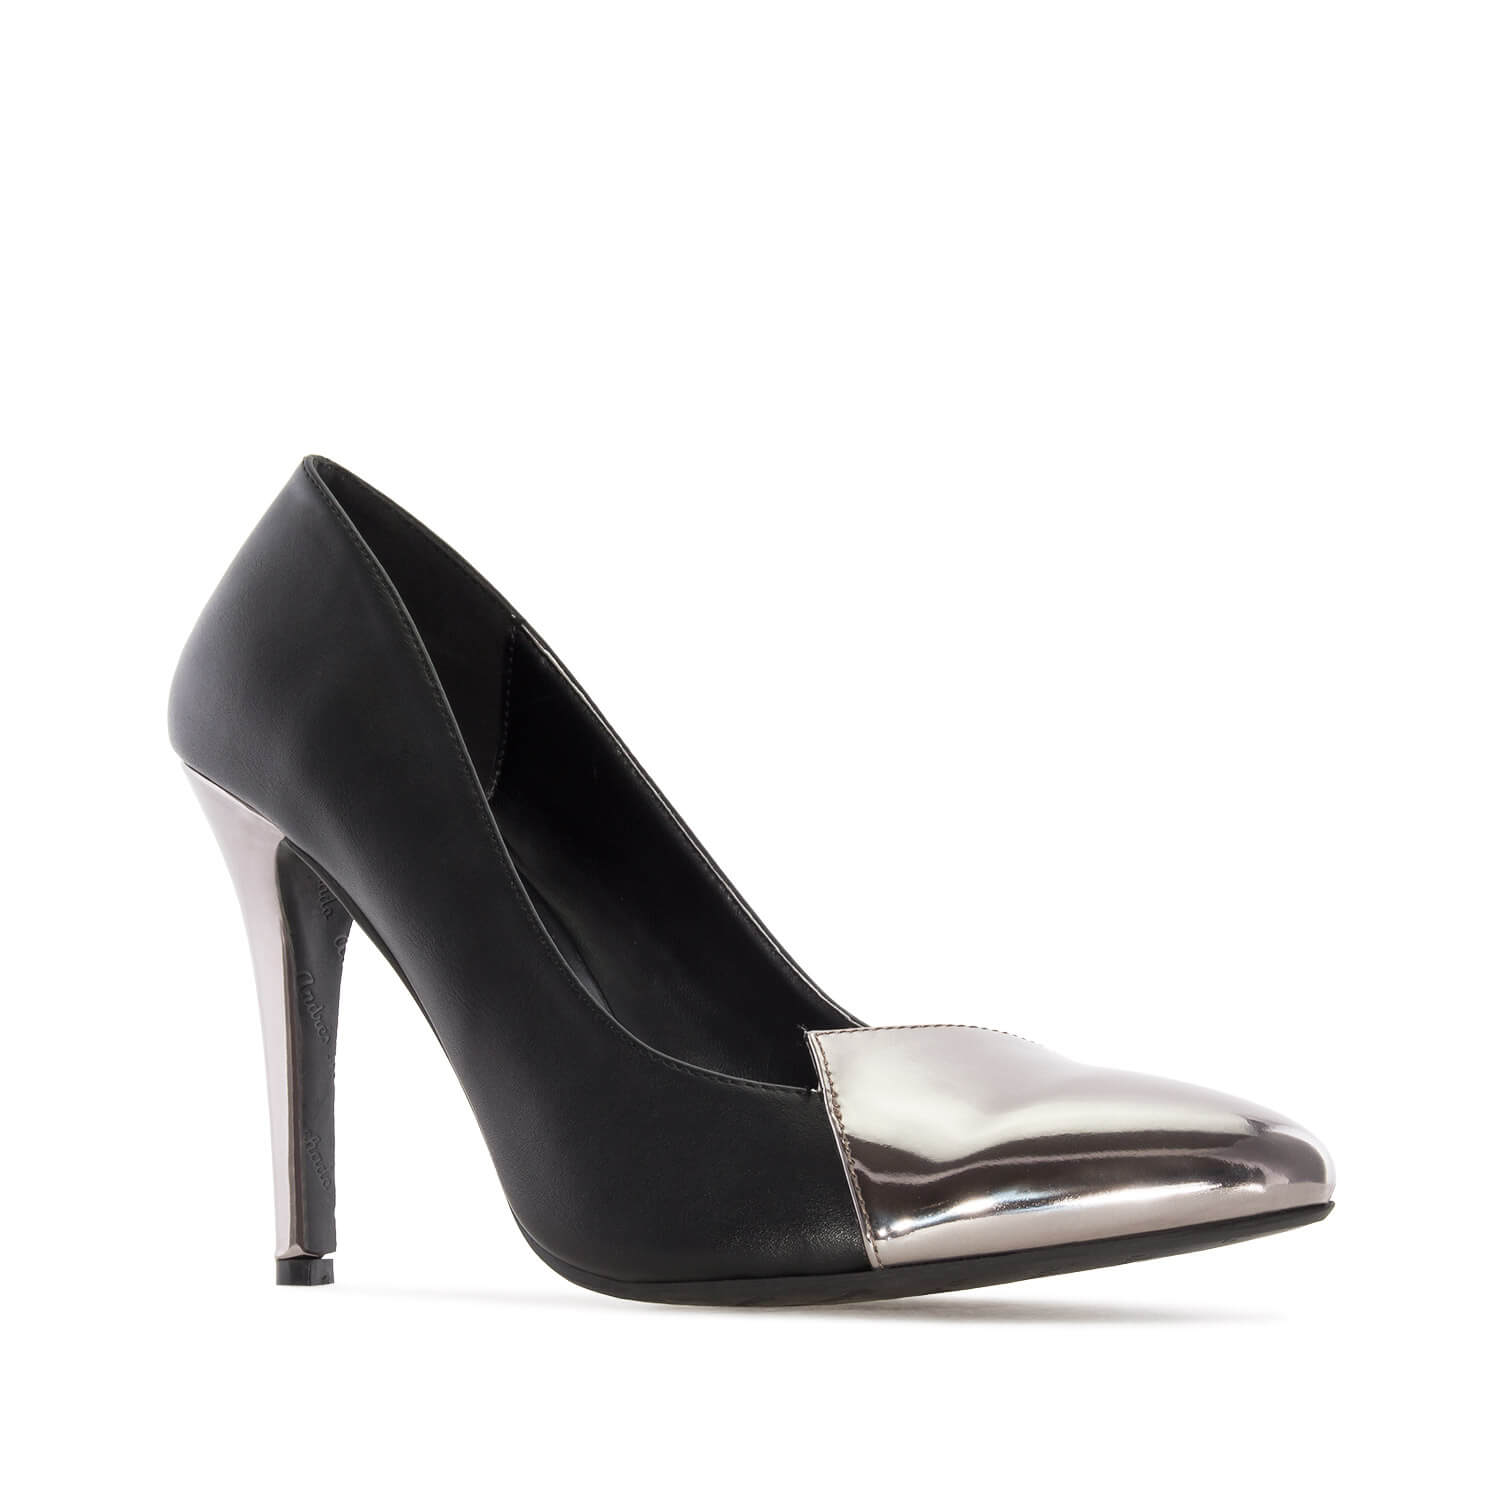 Pumps in Black faux Leather with Silver Patent Tip & Heel